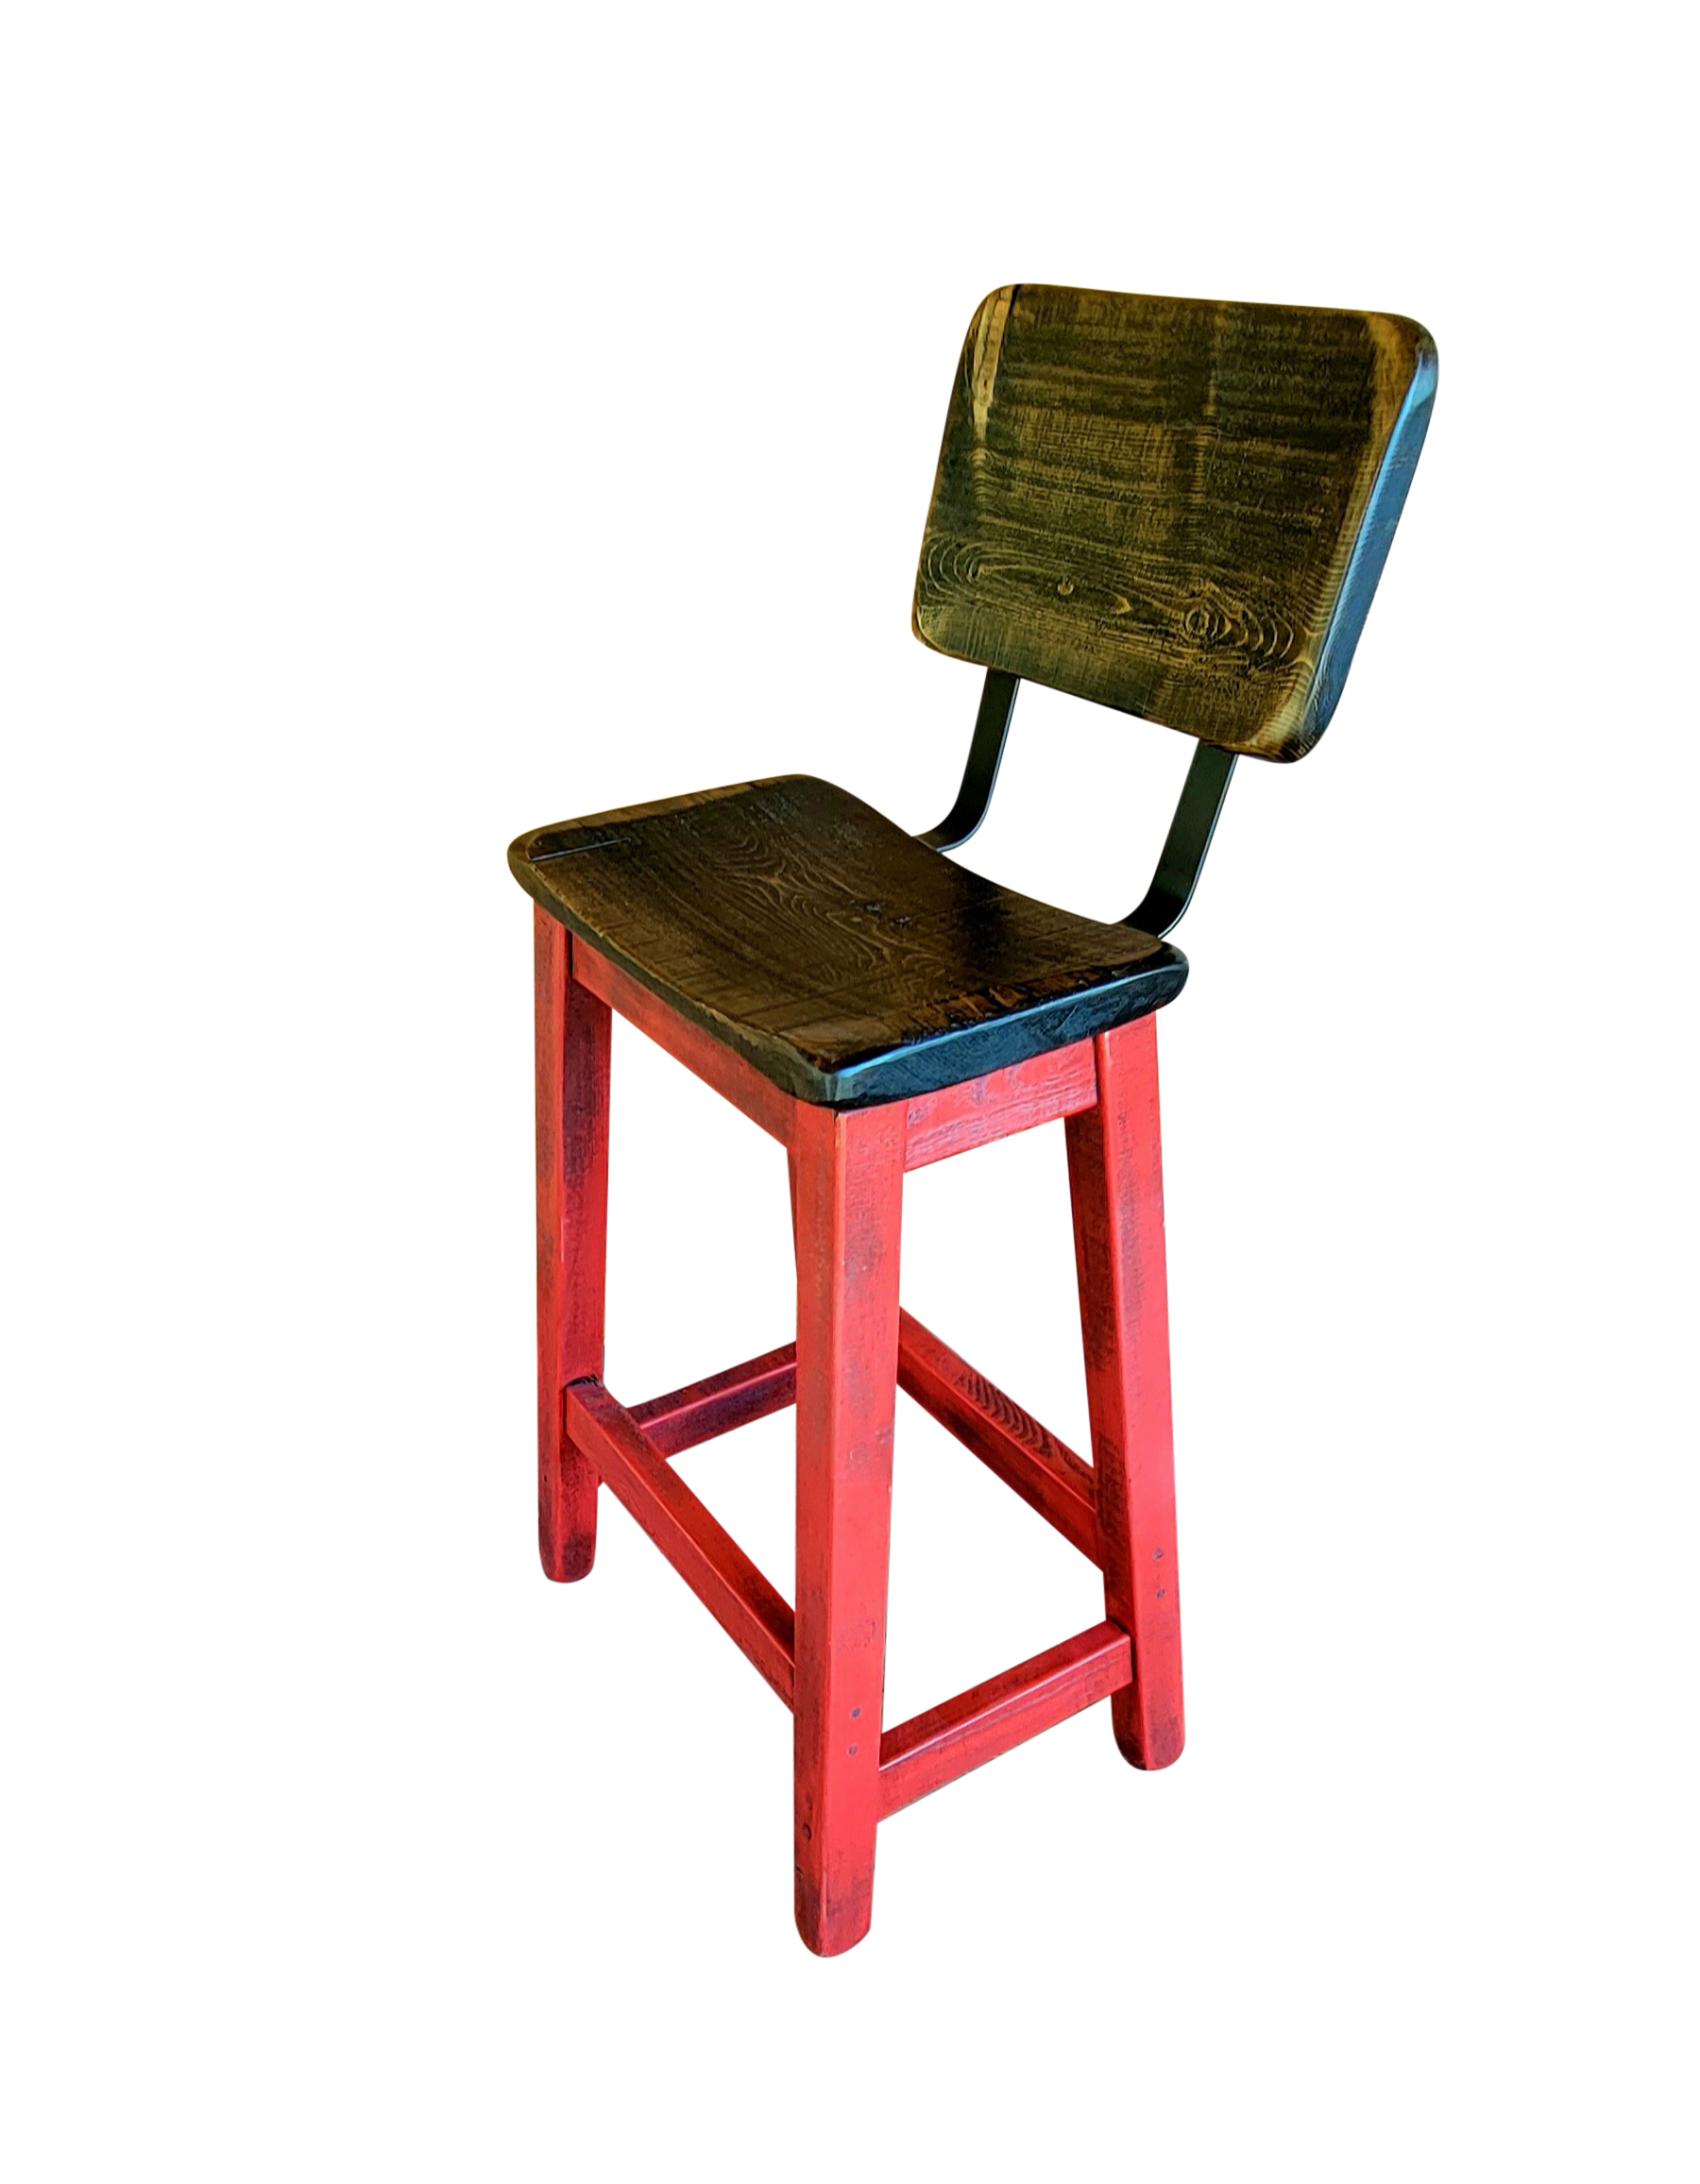 Barnyard Red Bar Stools with Curved Seats and Backs